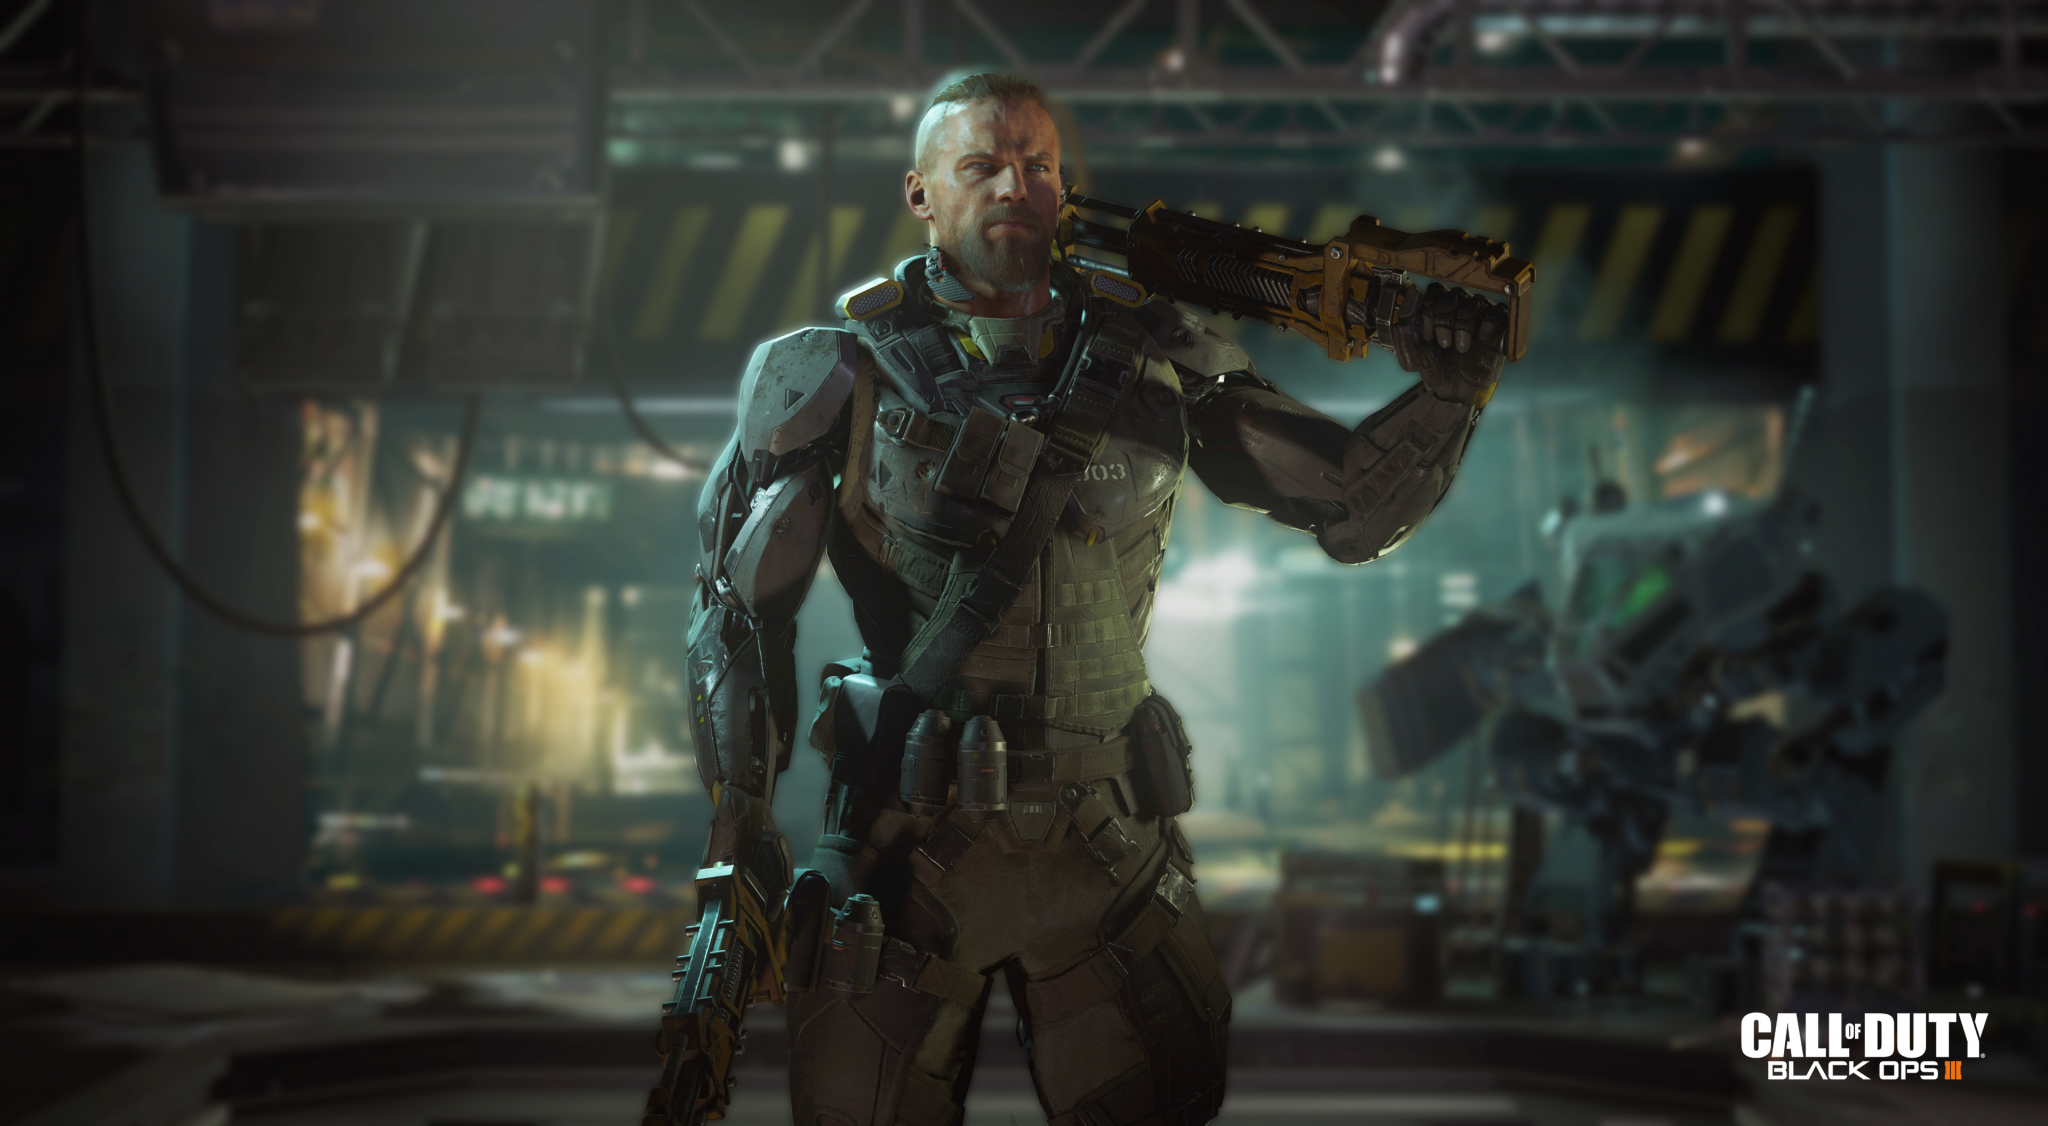 Call Of Duty Black Ops 3 Wallpapers And Backgrounds